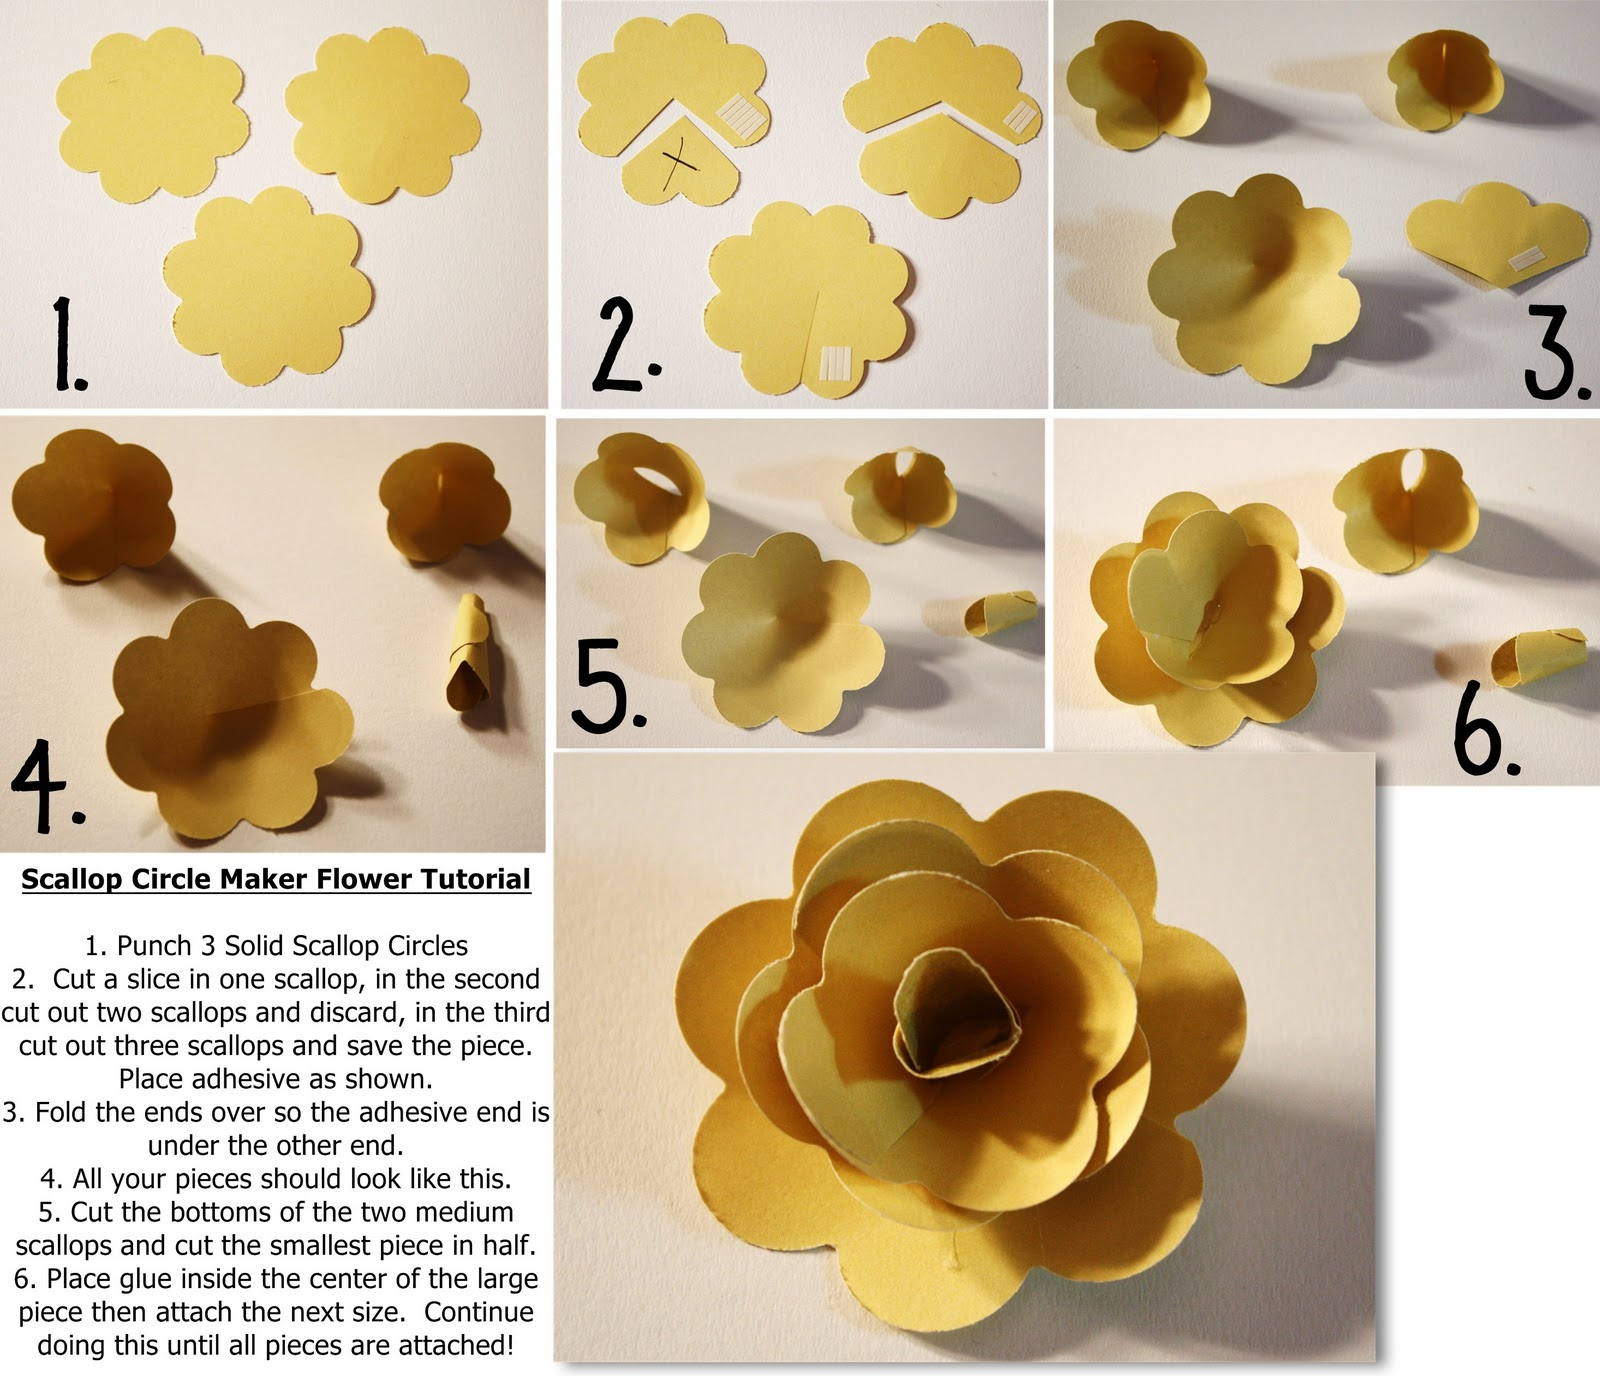 Bits Of Paper Scallop Circle Maker Flower Tutorial